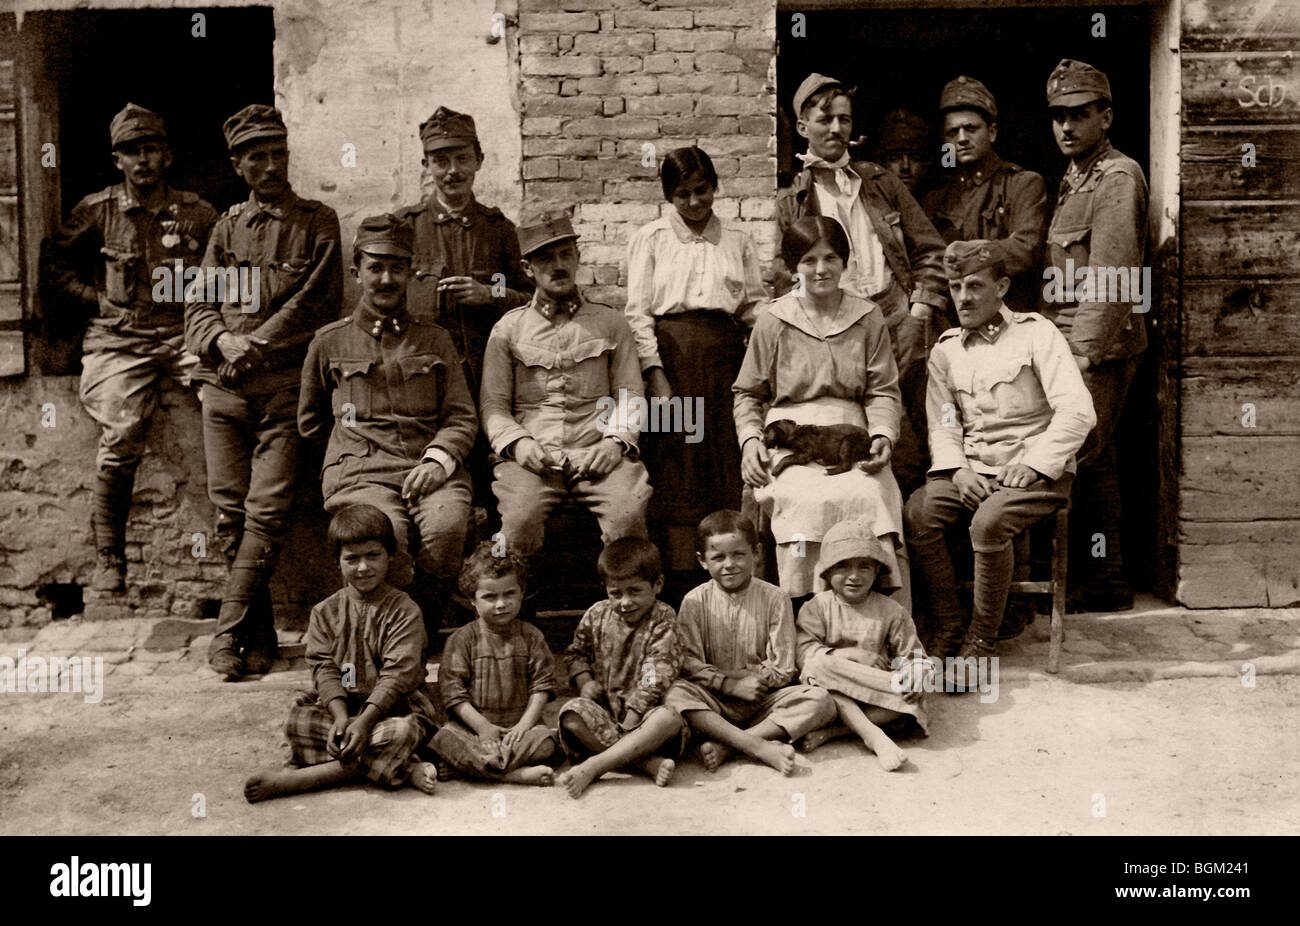 Soldiers with civilians, historic photograph, around 1945 - Stock Image